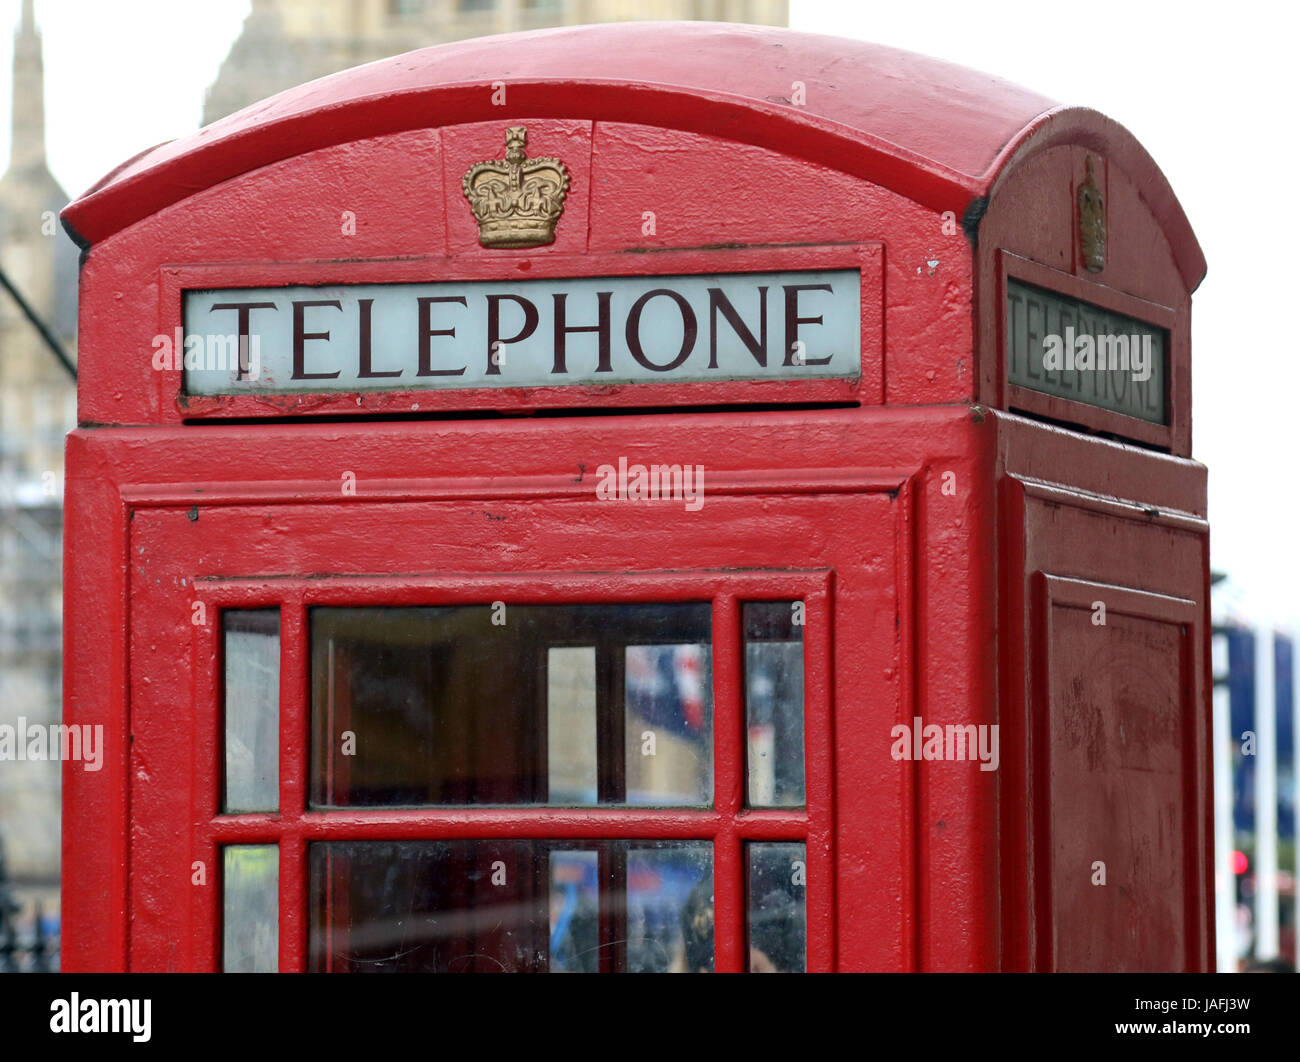 June 5, 2017 - A famous London Red Telephone box - Stock Image